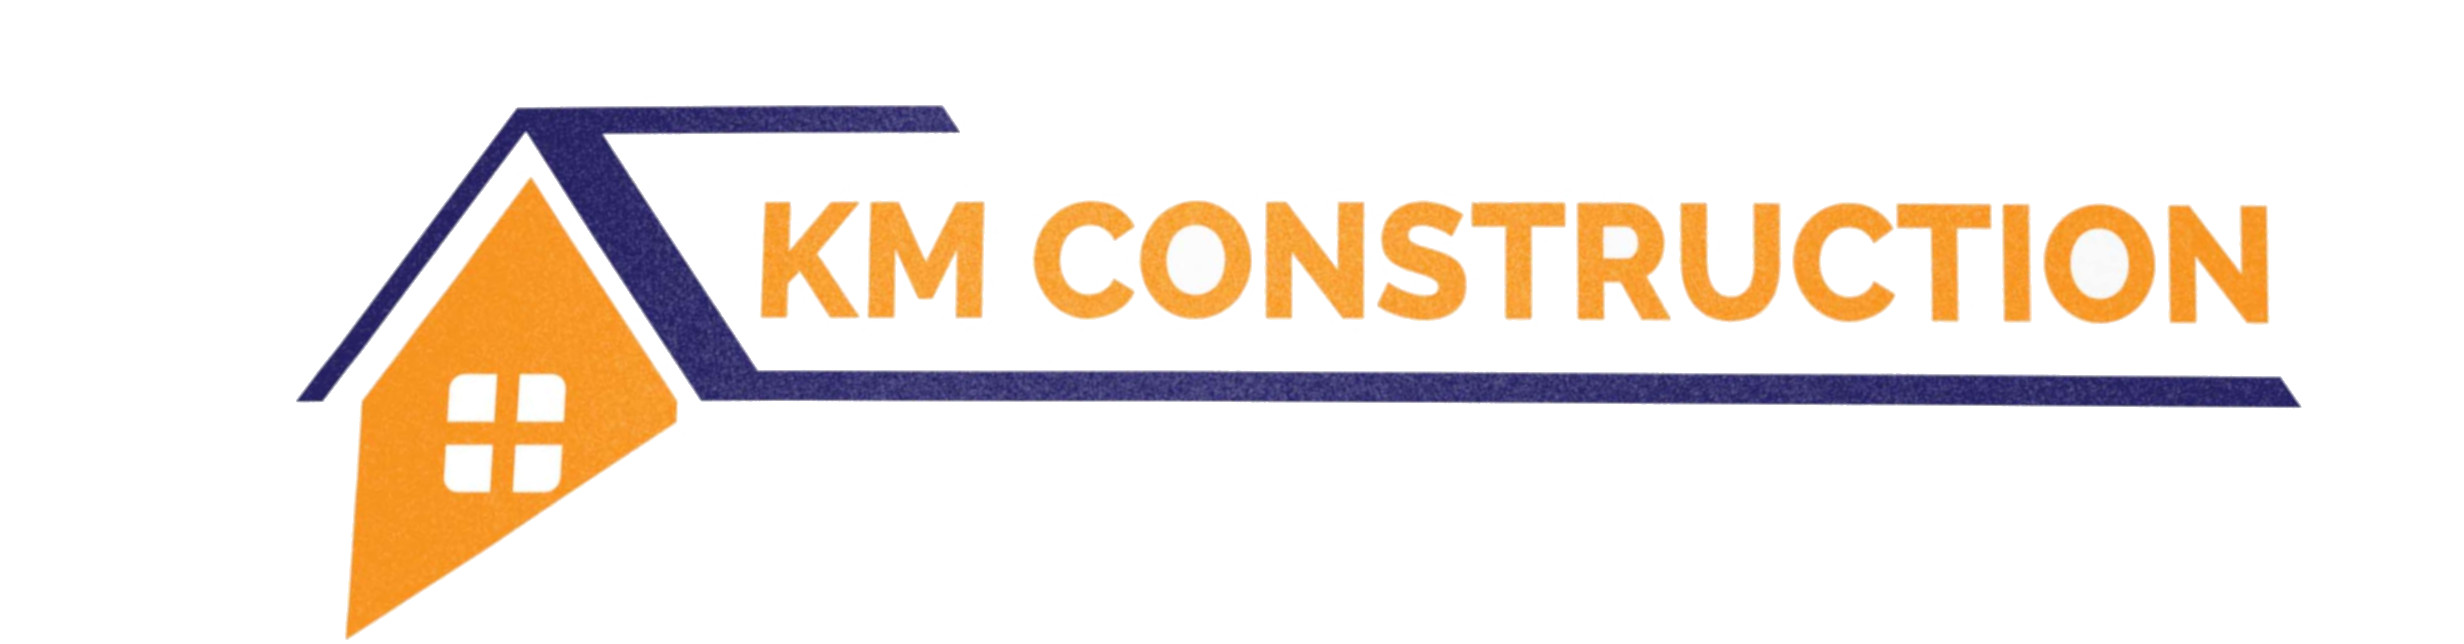 KM Construction | Dublin Builder